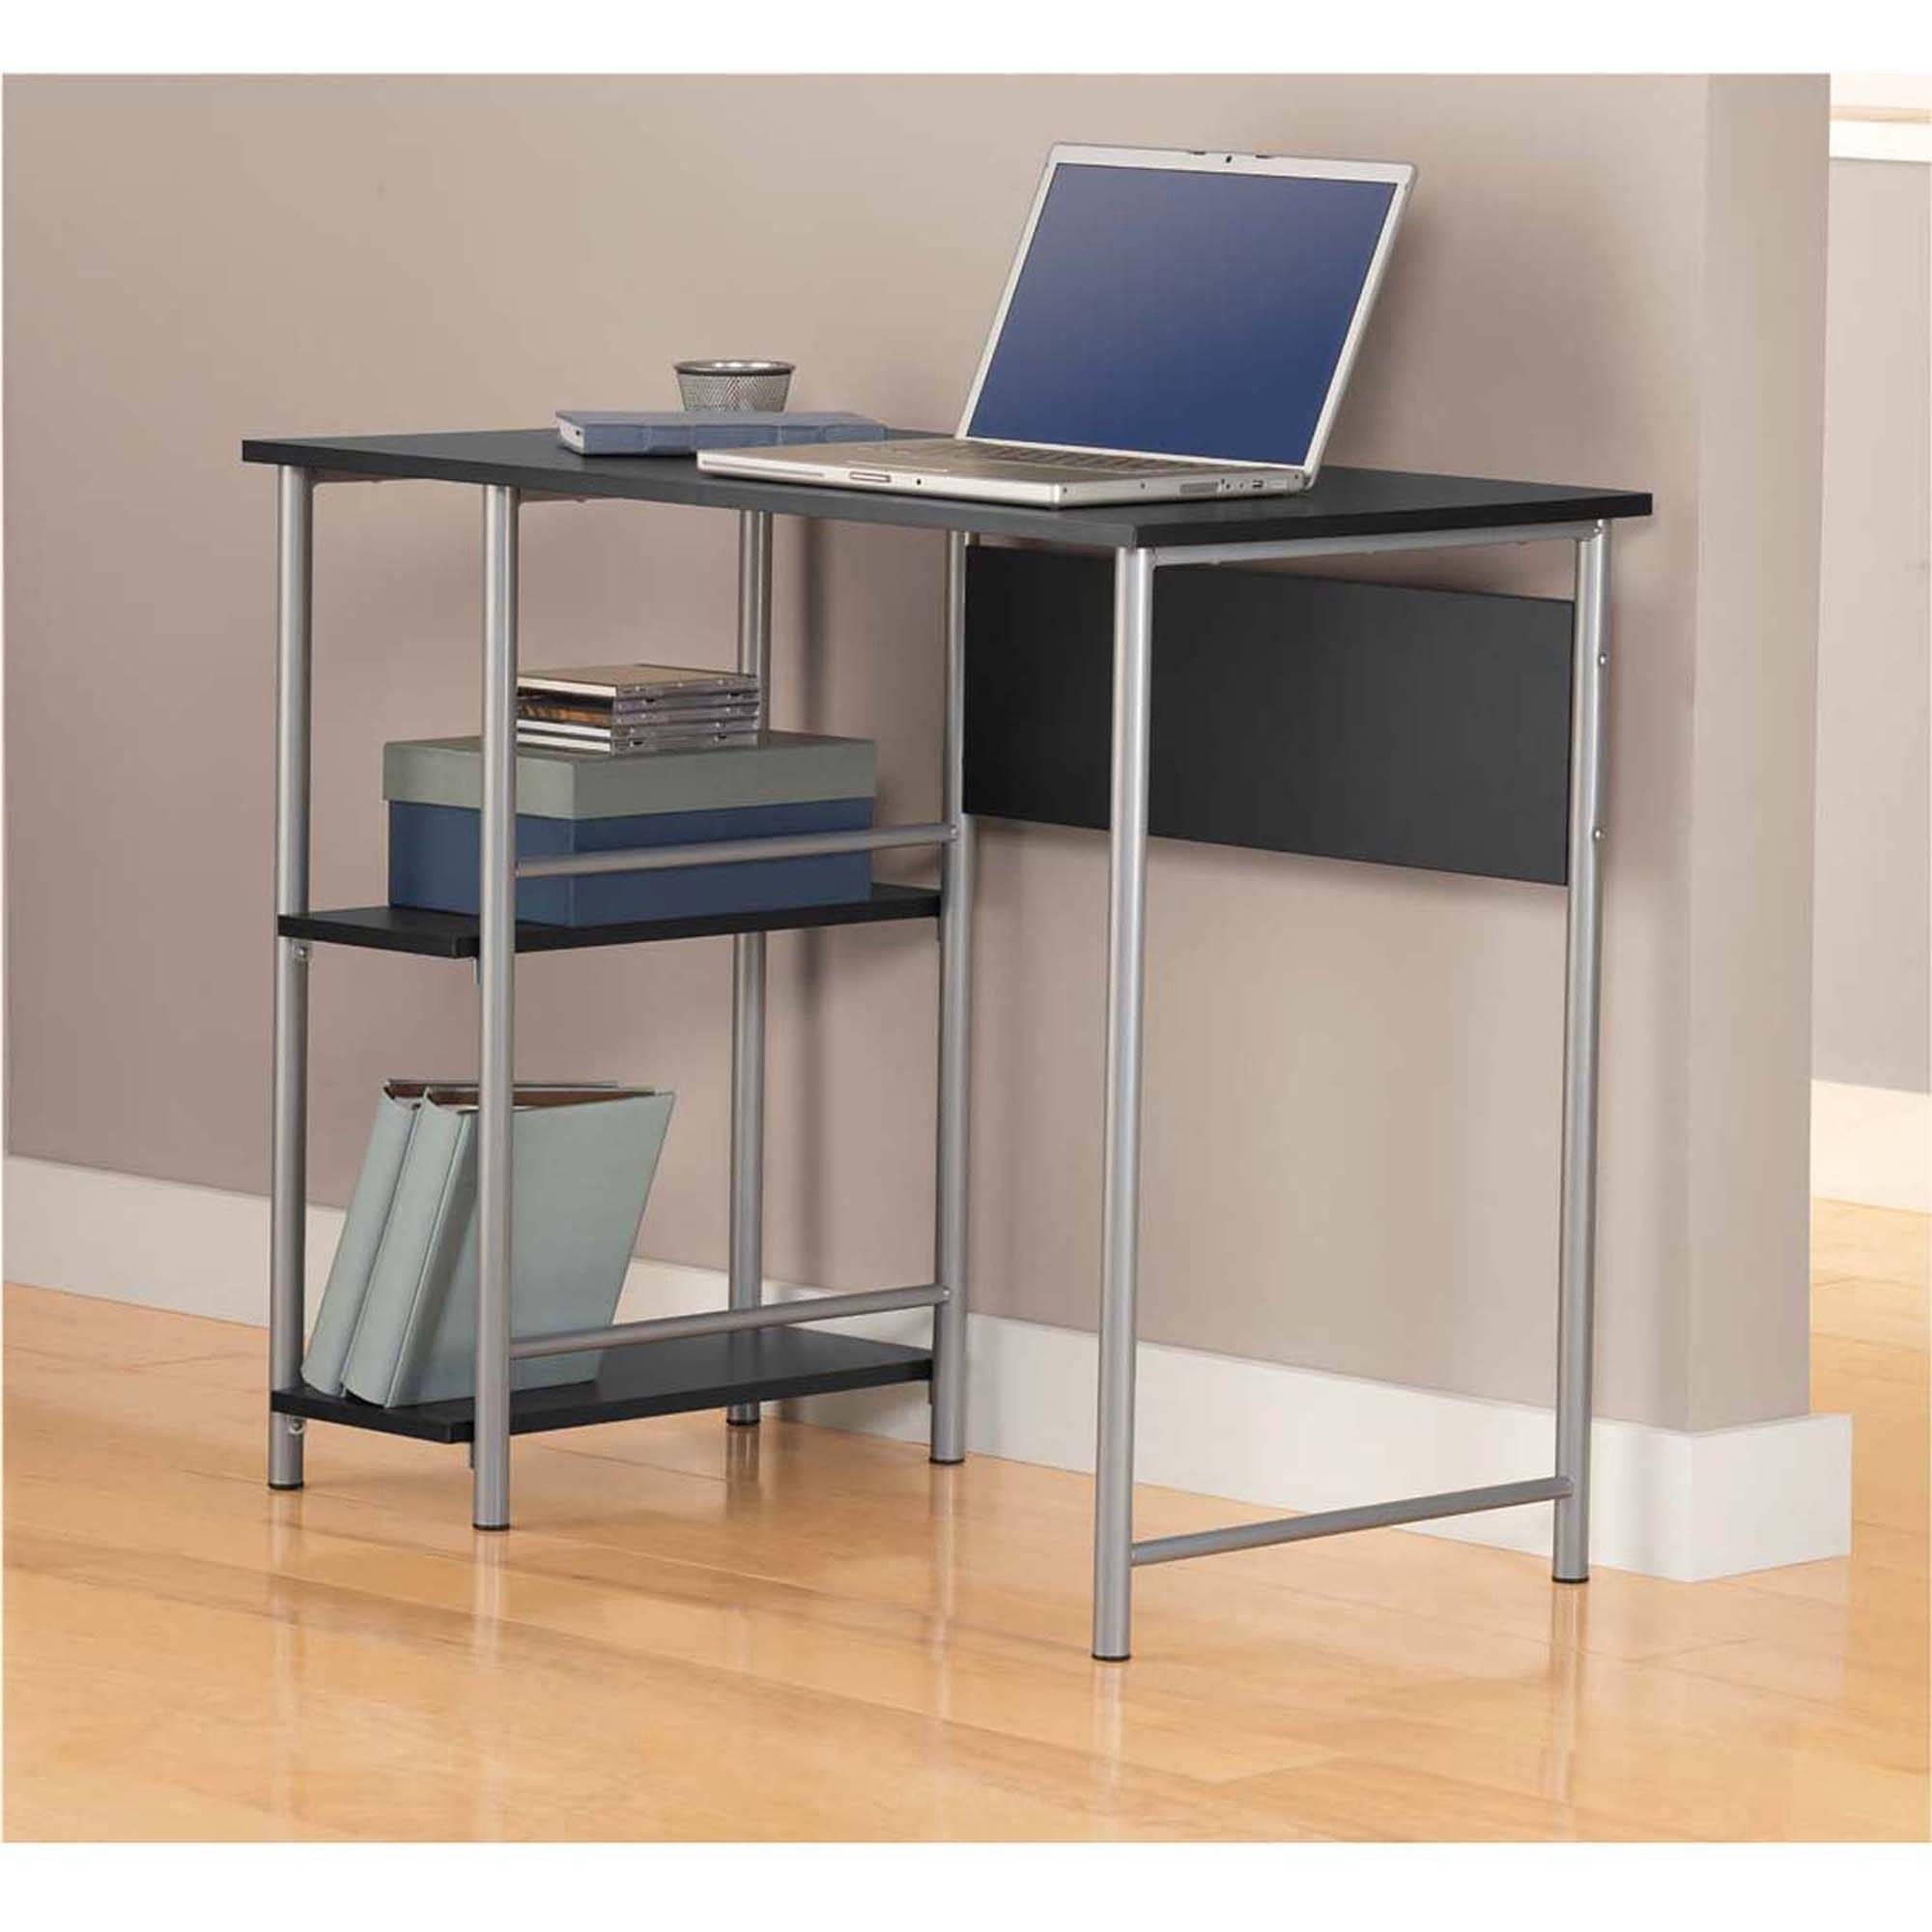 Preferred Desks: Makes Getting Work Done Feel Like A Breeze With Walmart Regarding Computer Desks At Costco (View 17 of 20)